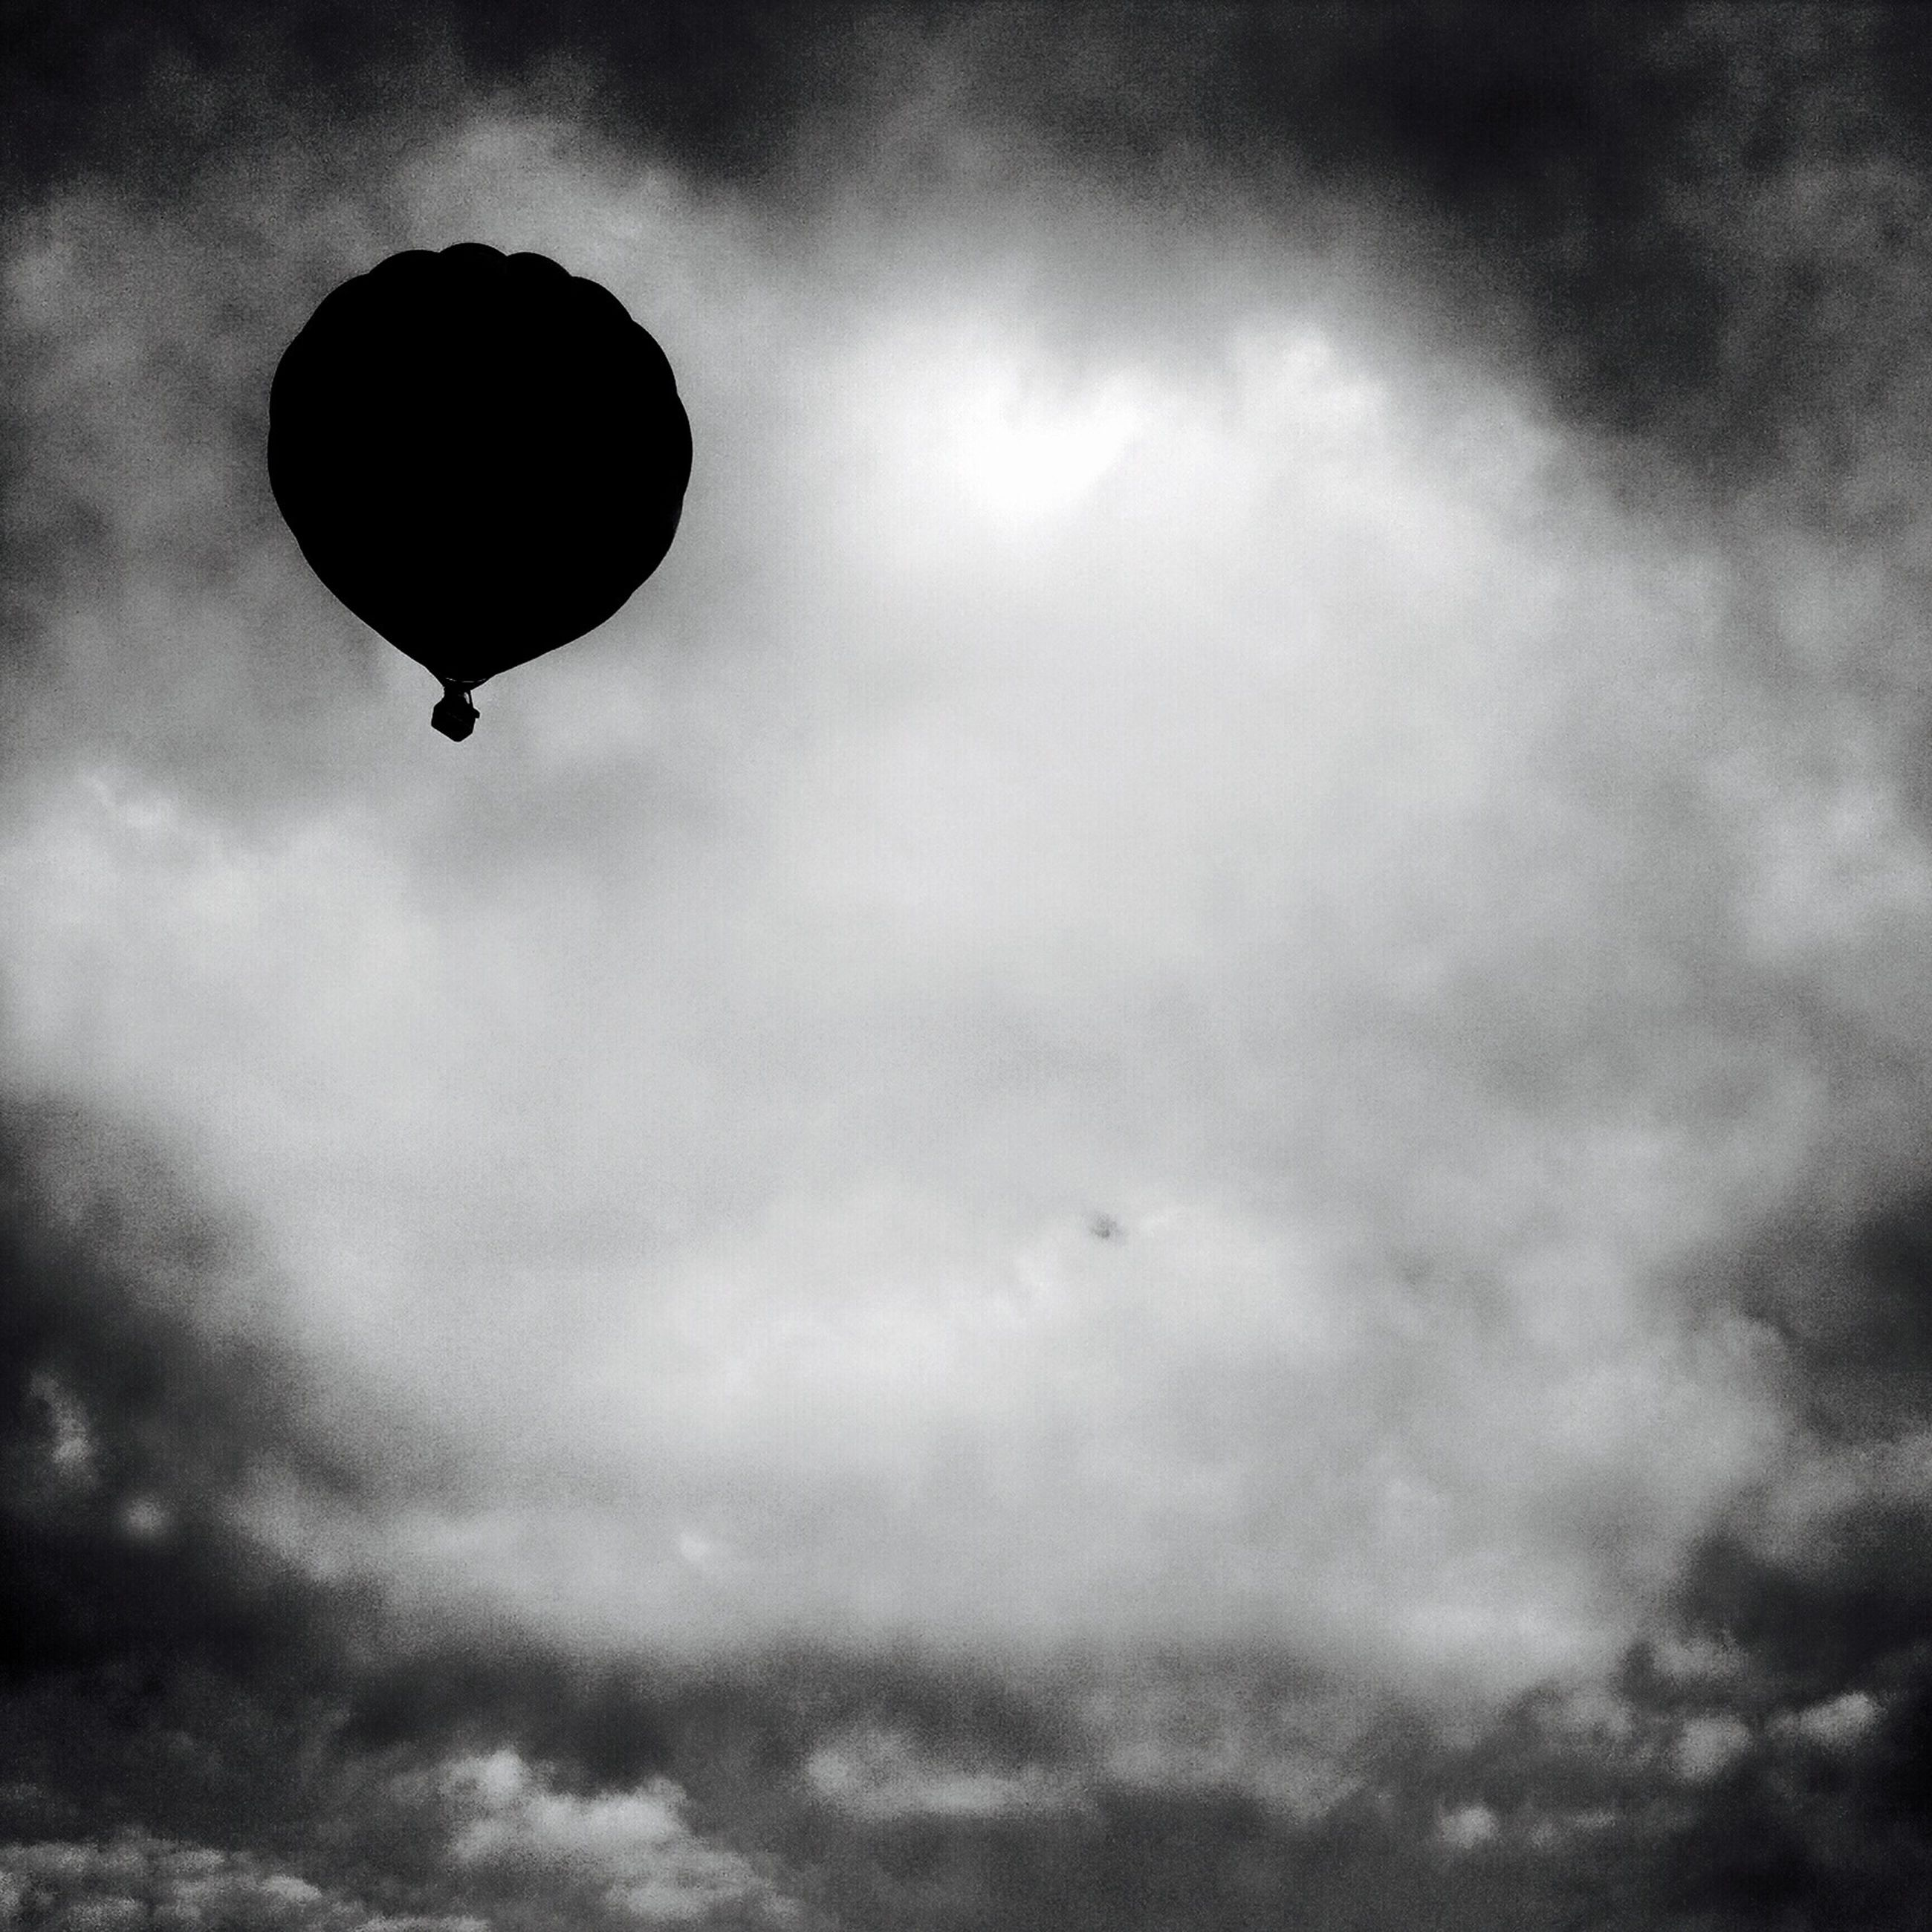 low angle view, sky, flying, mid-air, cloud - sky, cloudy, parachute, hot air balloon, cloud, scenics, adventure, tranquility, nature, beauty in nature, outdoors, dusk, tranquil scene, weather, overcast, no people